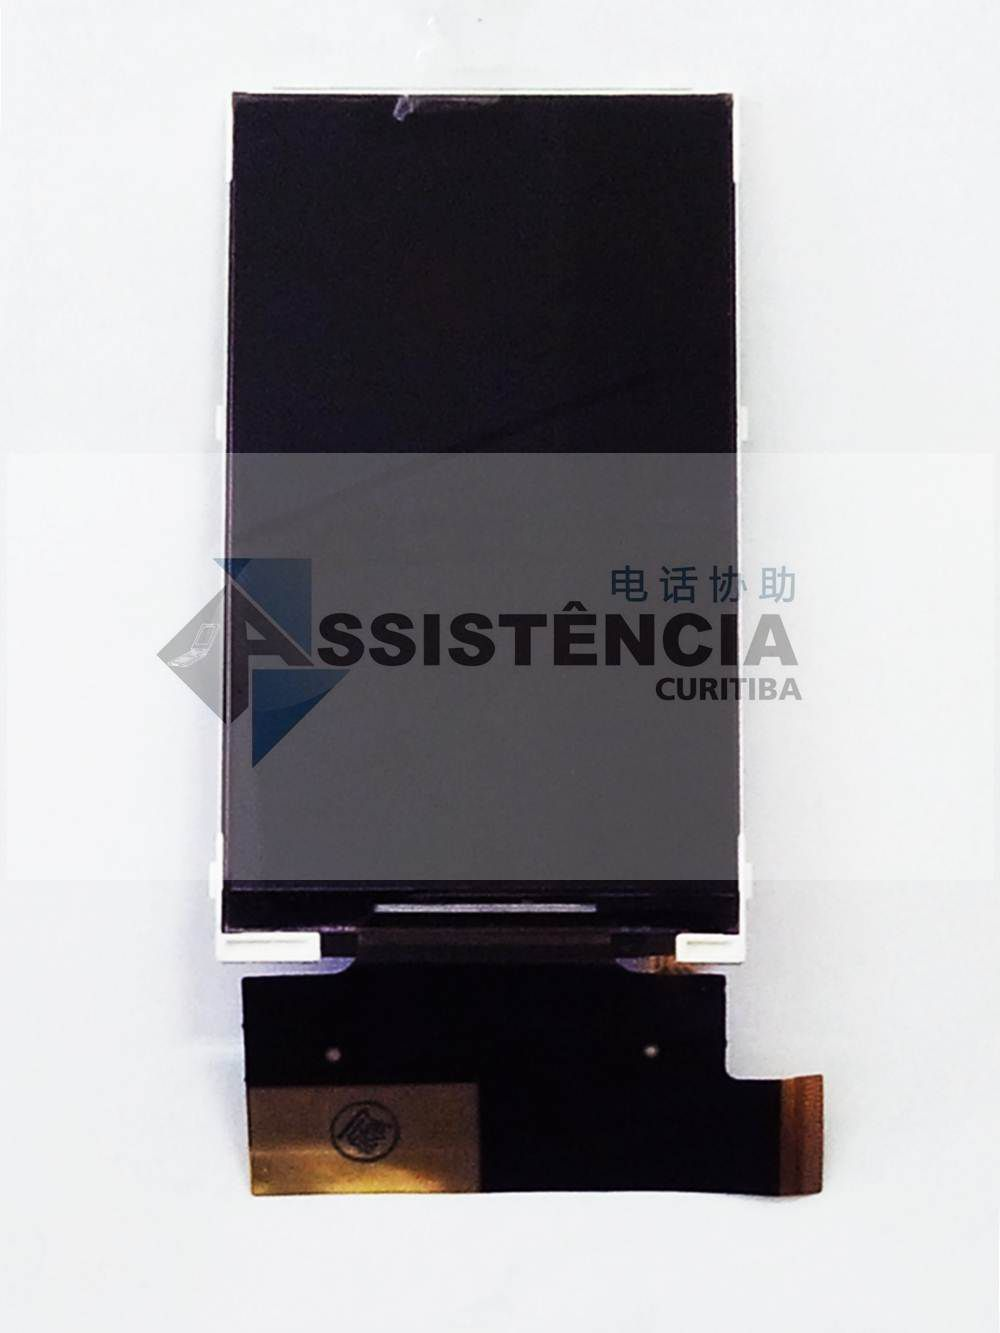 TELA DISPLAY LCD CELULAR CCE SK402 MOTION PLUS